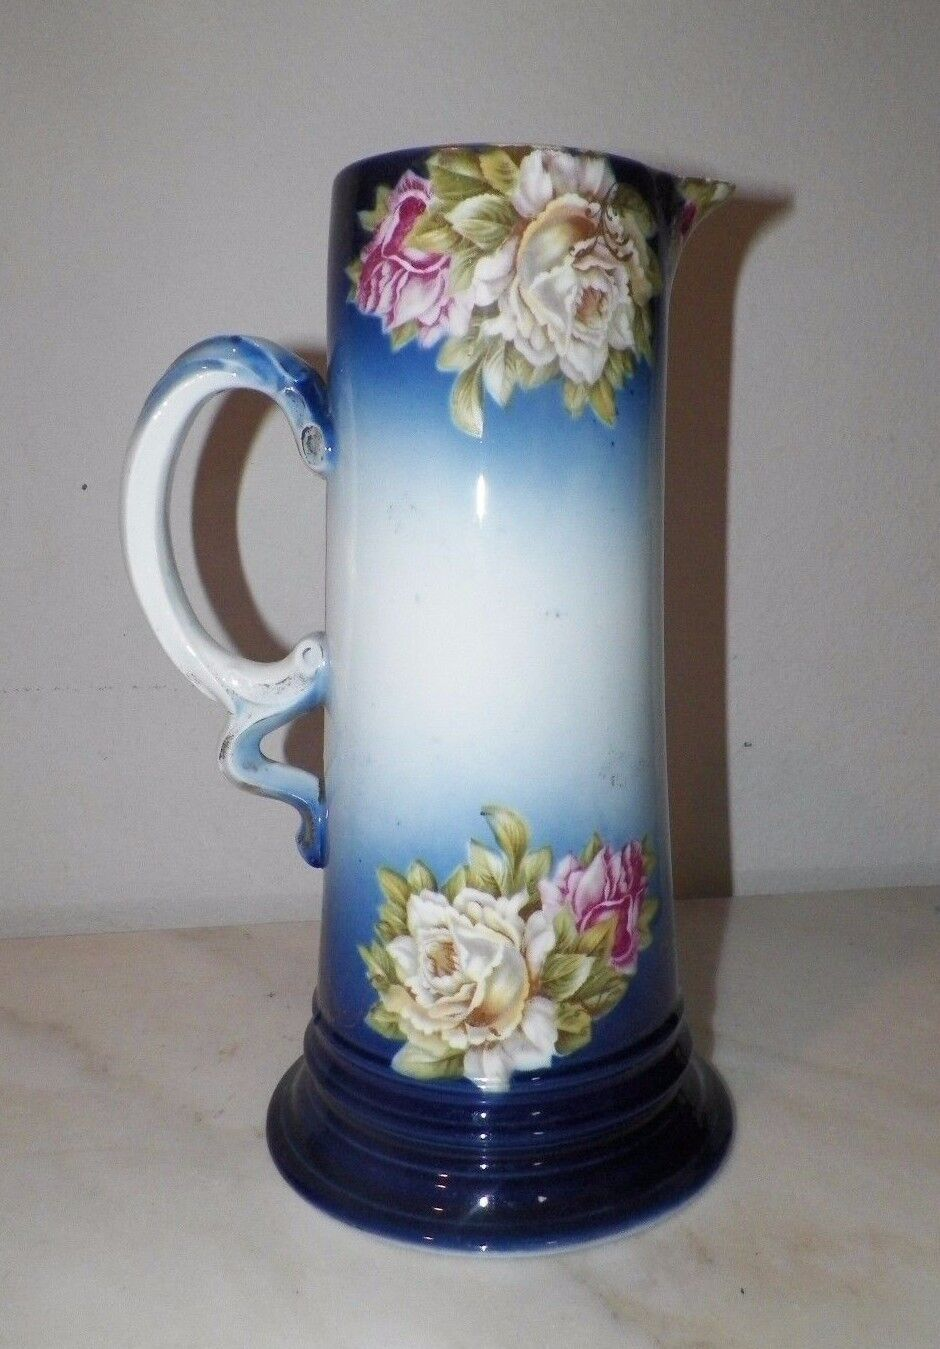 "VINTAGE FRENCH HANDPAINTED BLUE WITH PINK WHITE ROSES TALL PITCHER 12 1/4"" TALL"